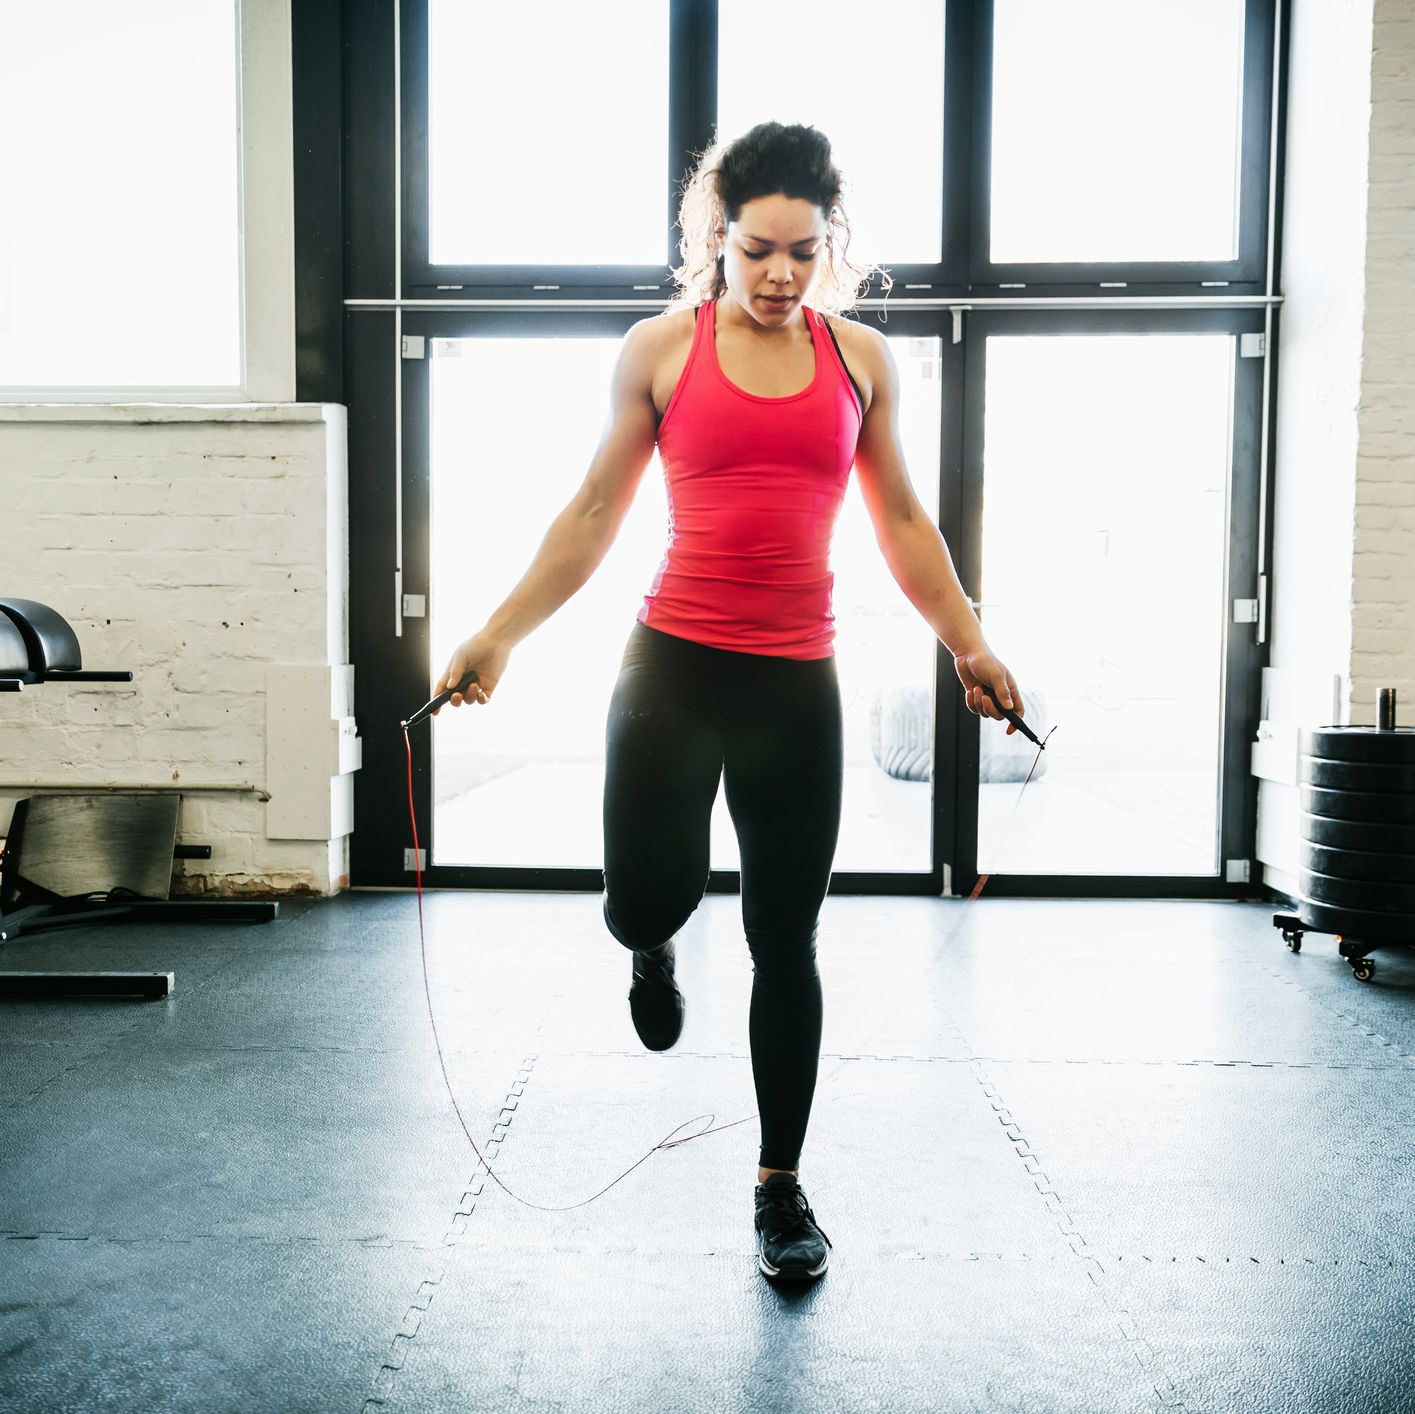 Why HIIT Is the Best Type of Workout to Do if You Want to See Results Fast